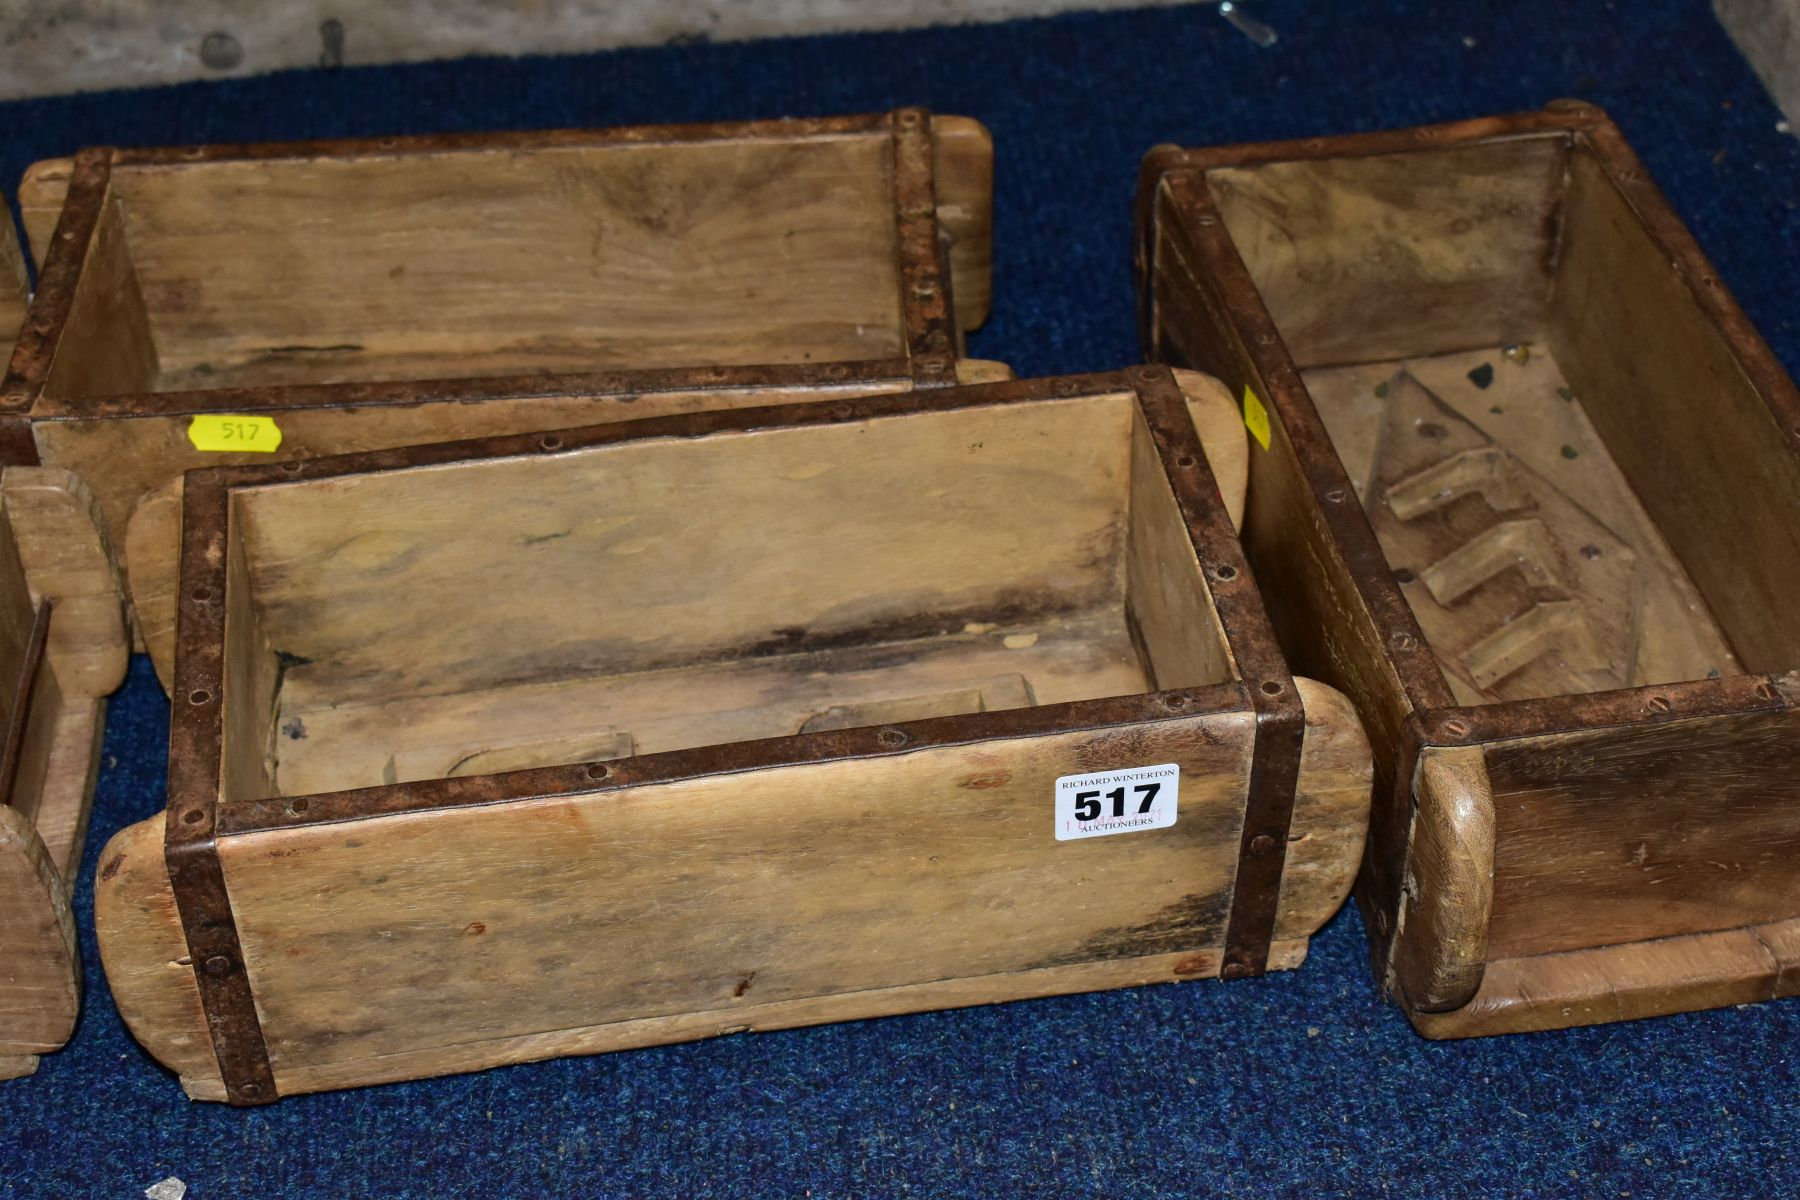 FIVE WOODEN AND METAL BOUND BRICKMAKERS MOULDS, all five with initials/numbers to the interiors, - Image 2 of 5